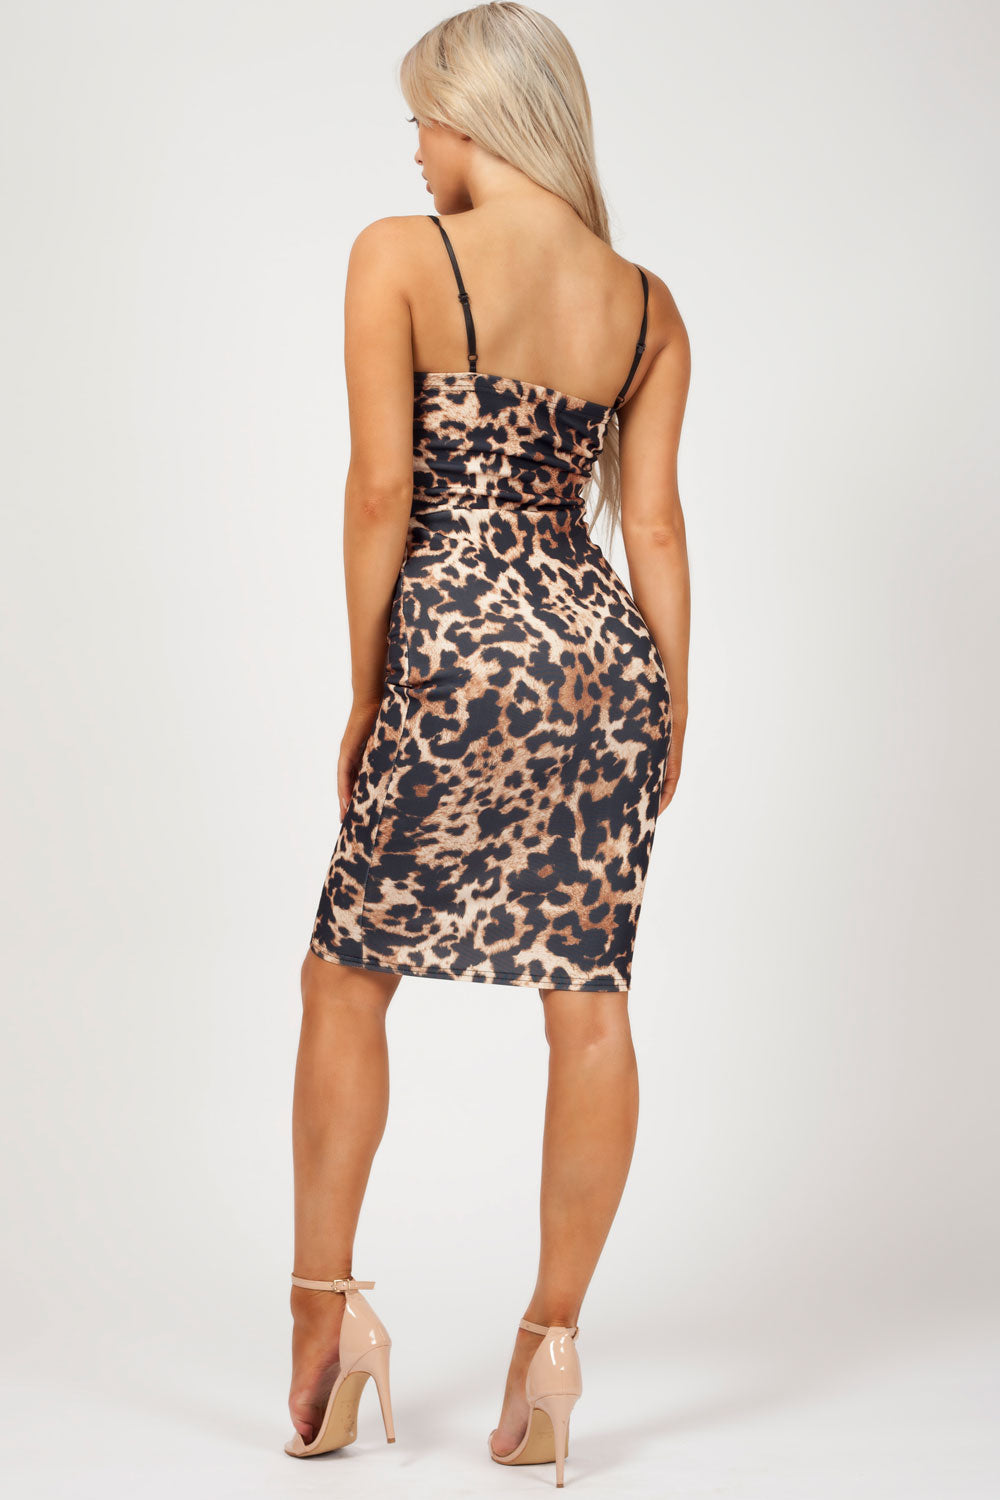 uk size 6 animal print dress